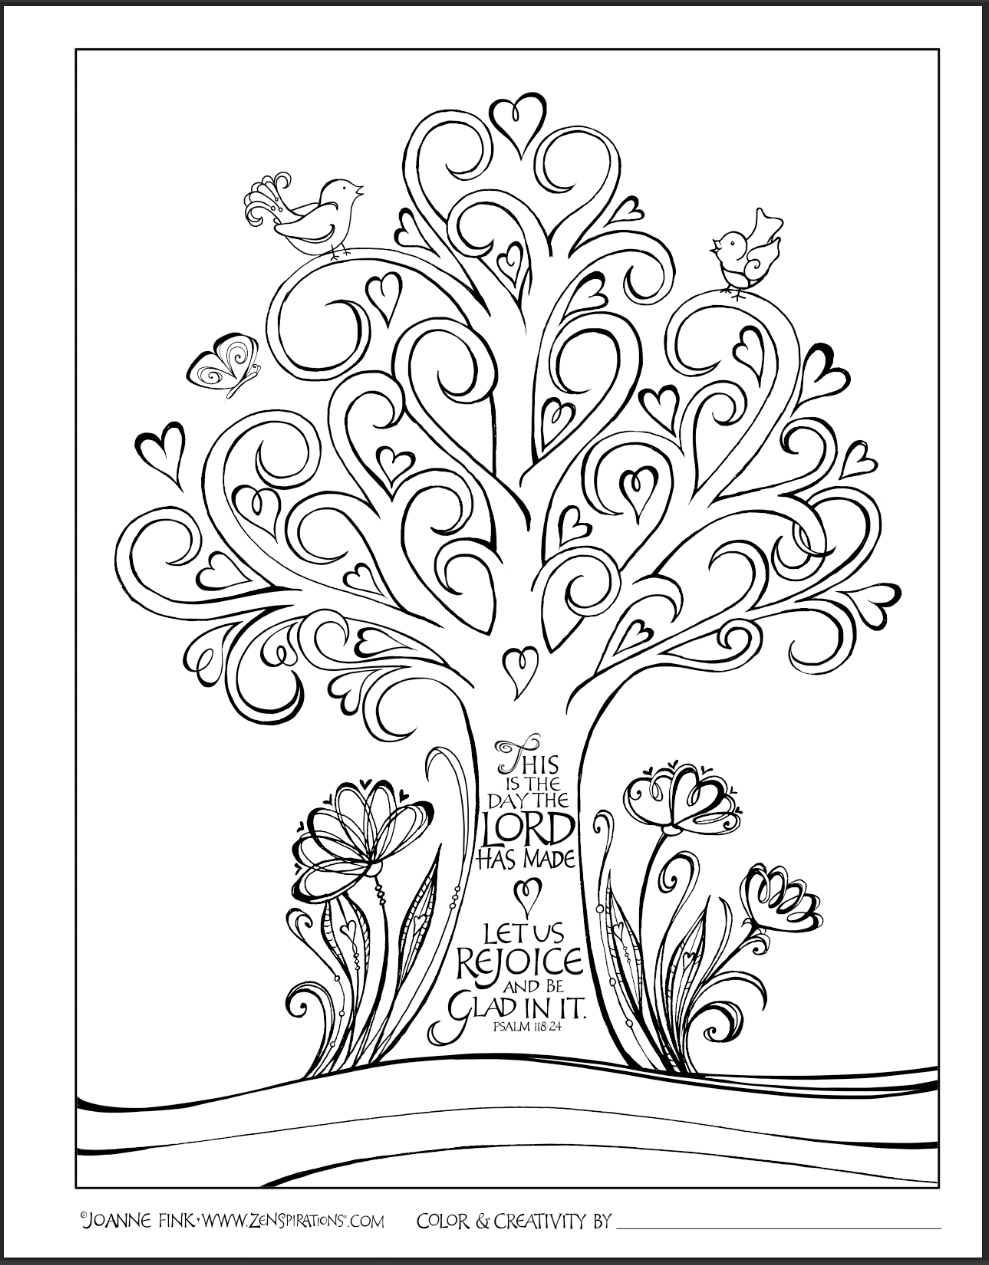 bible coloring pages for adults - HD 989×1265